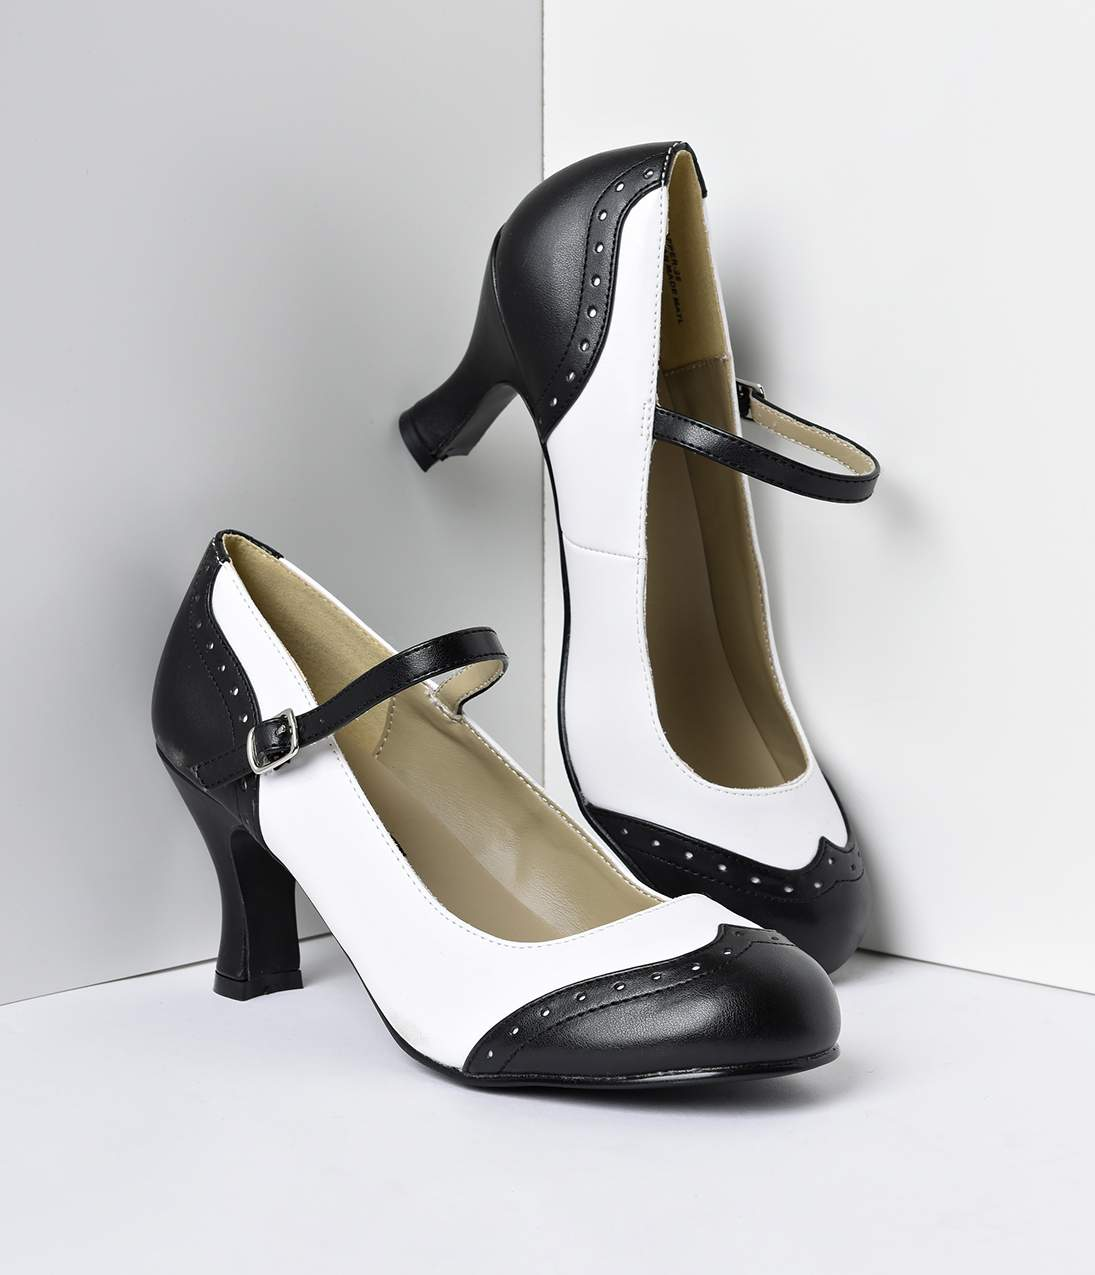 Vintage Style Shoes, Vintage Inspired Shoes Black  White Mary Jane Kitten Spectator Heels $58.00 AT vintagedancer.com